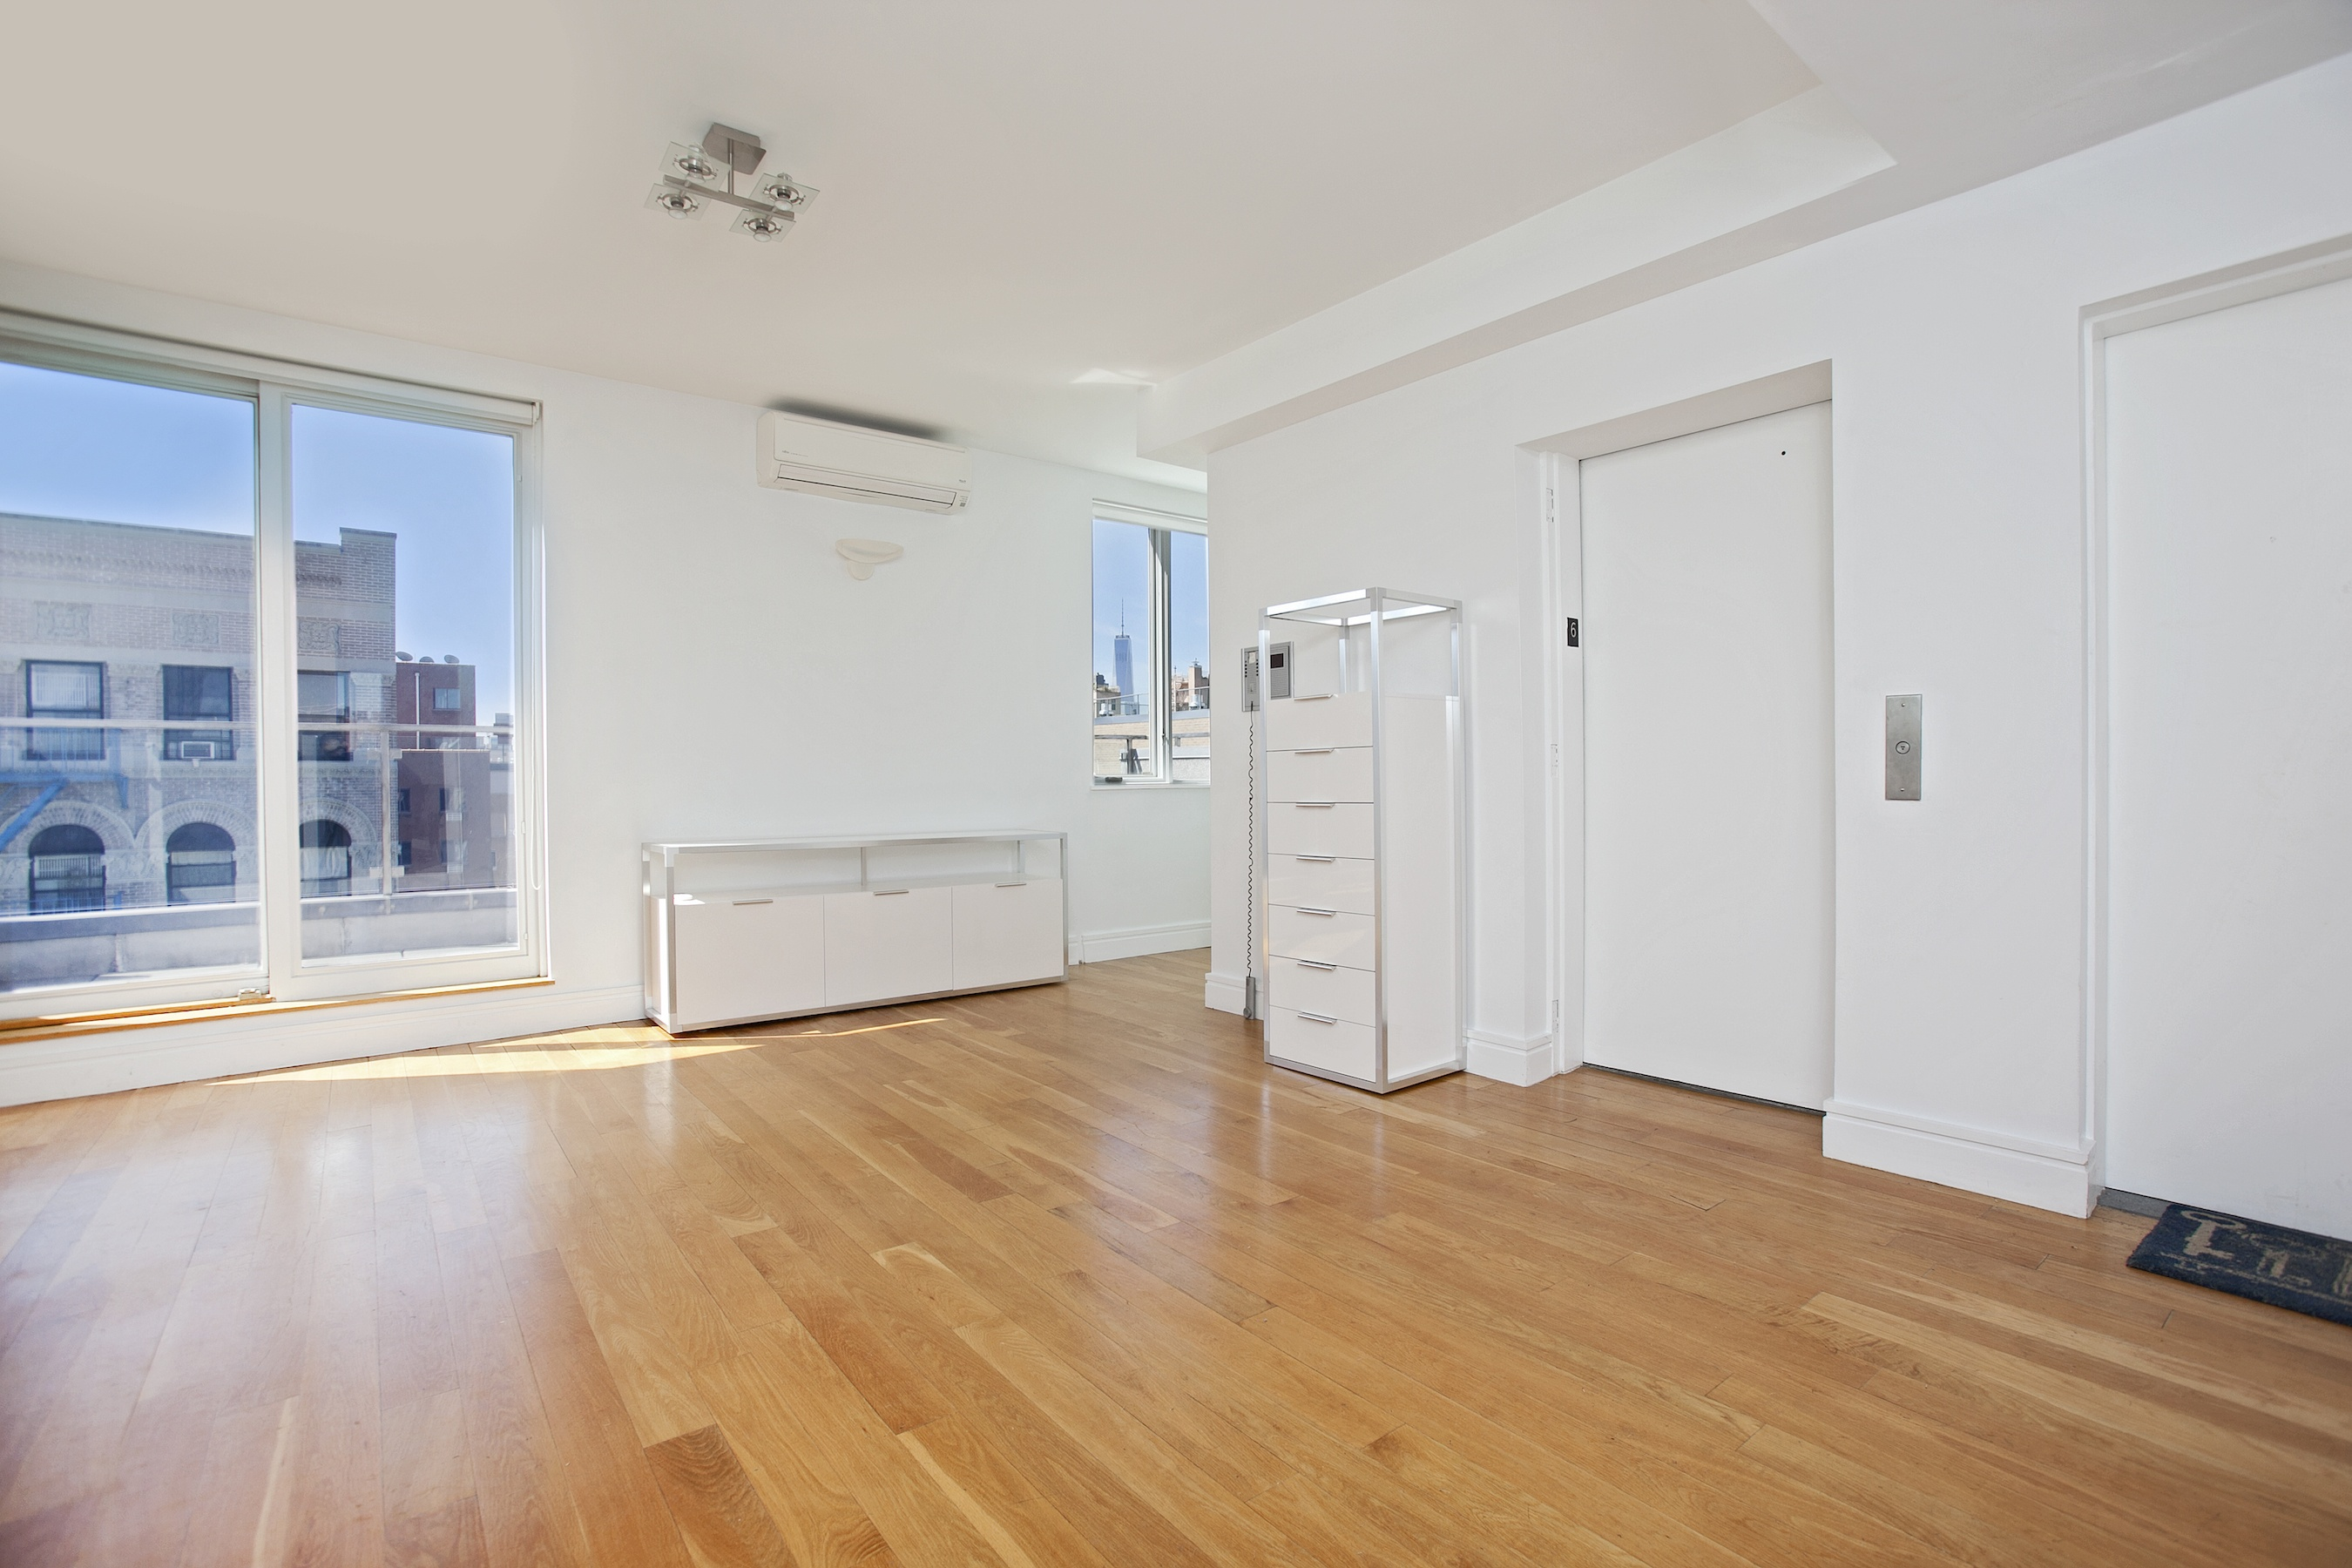 Penthouse 3 bed 2 bath condo with 3 terraces and a private for 10 east 39th street 8th floor new york ny 10016